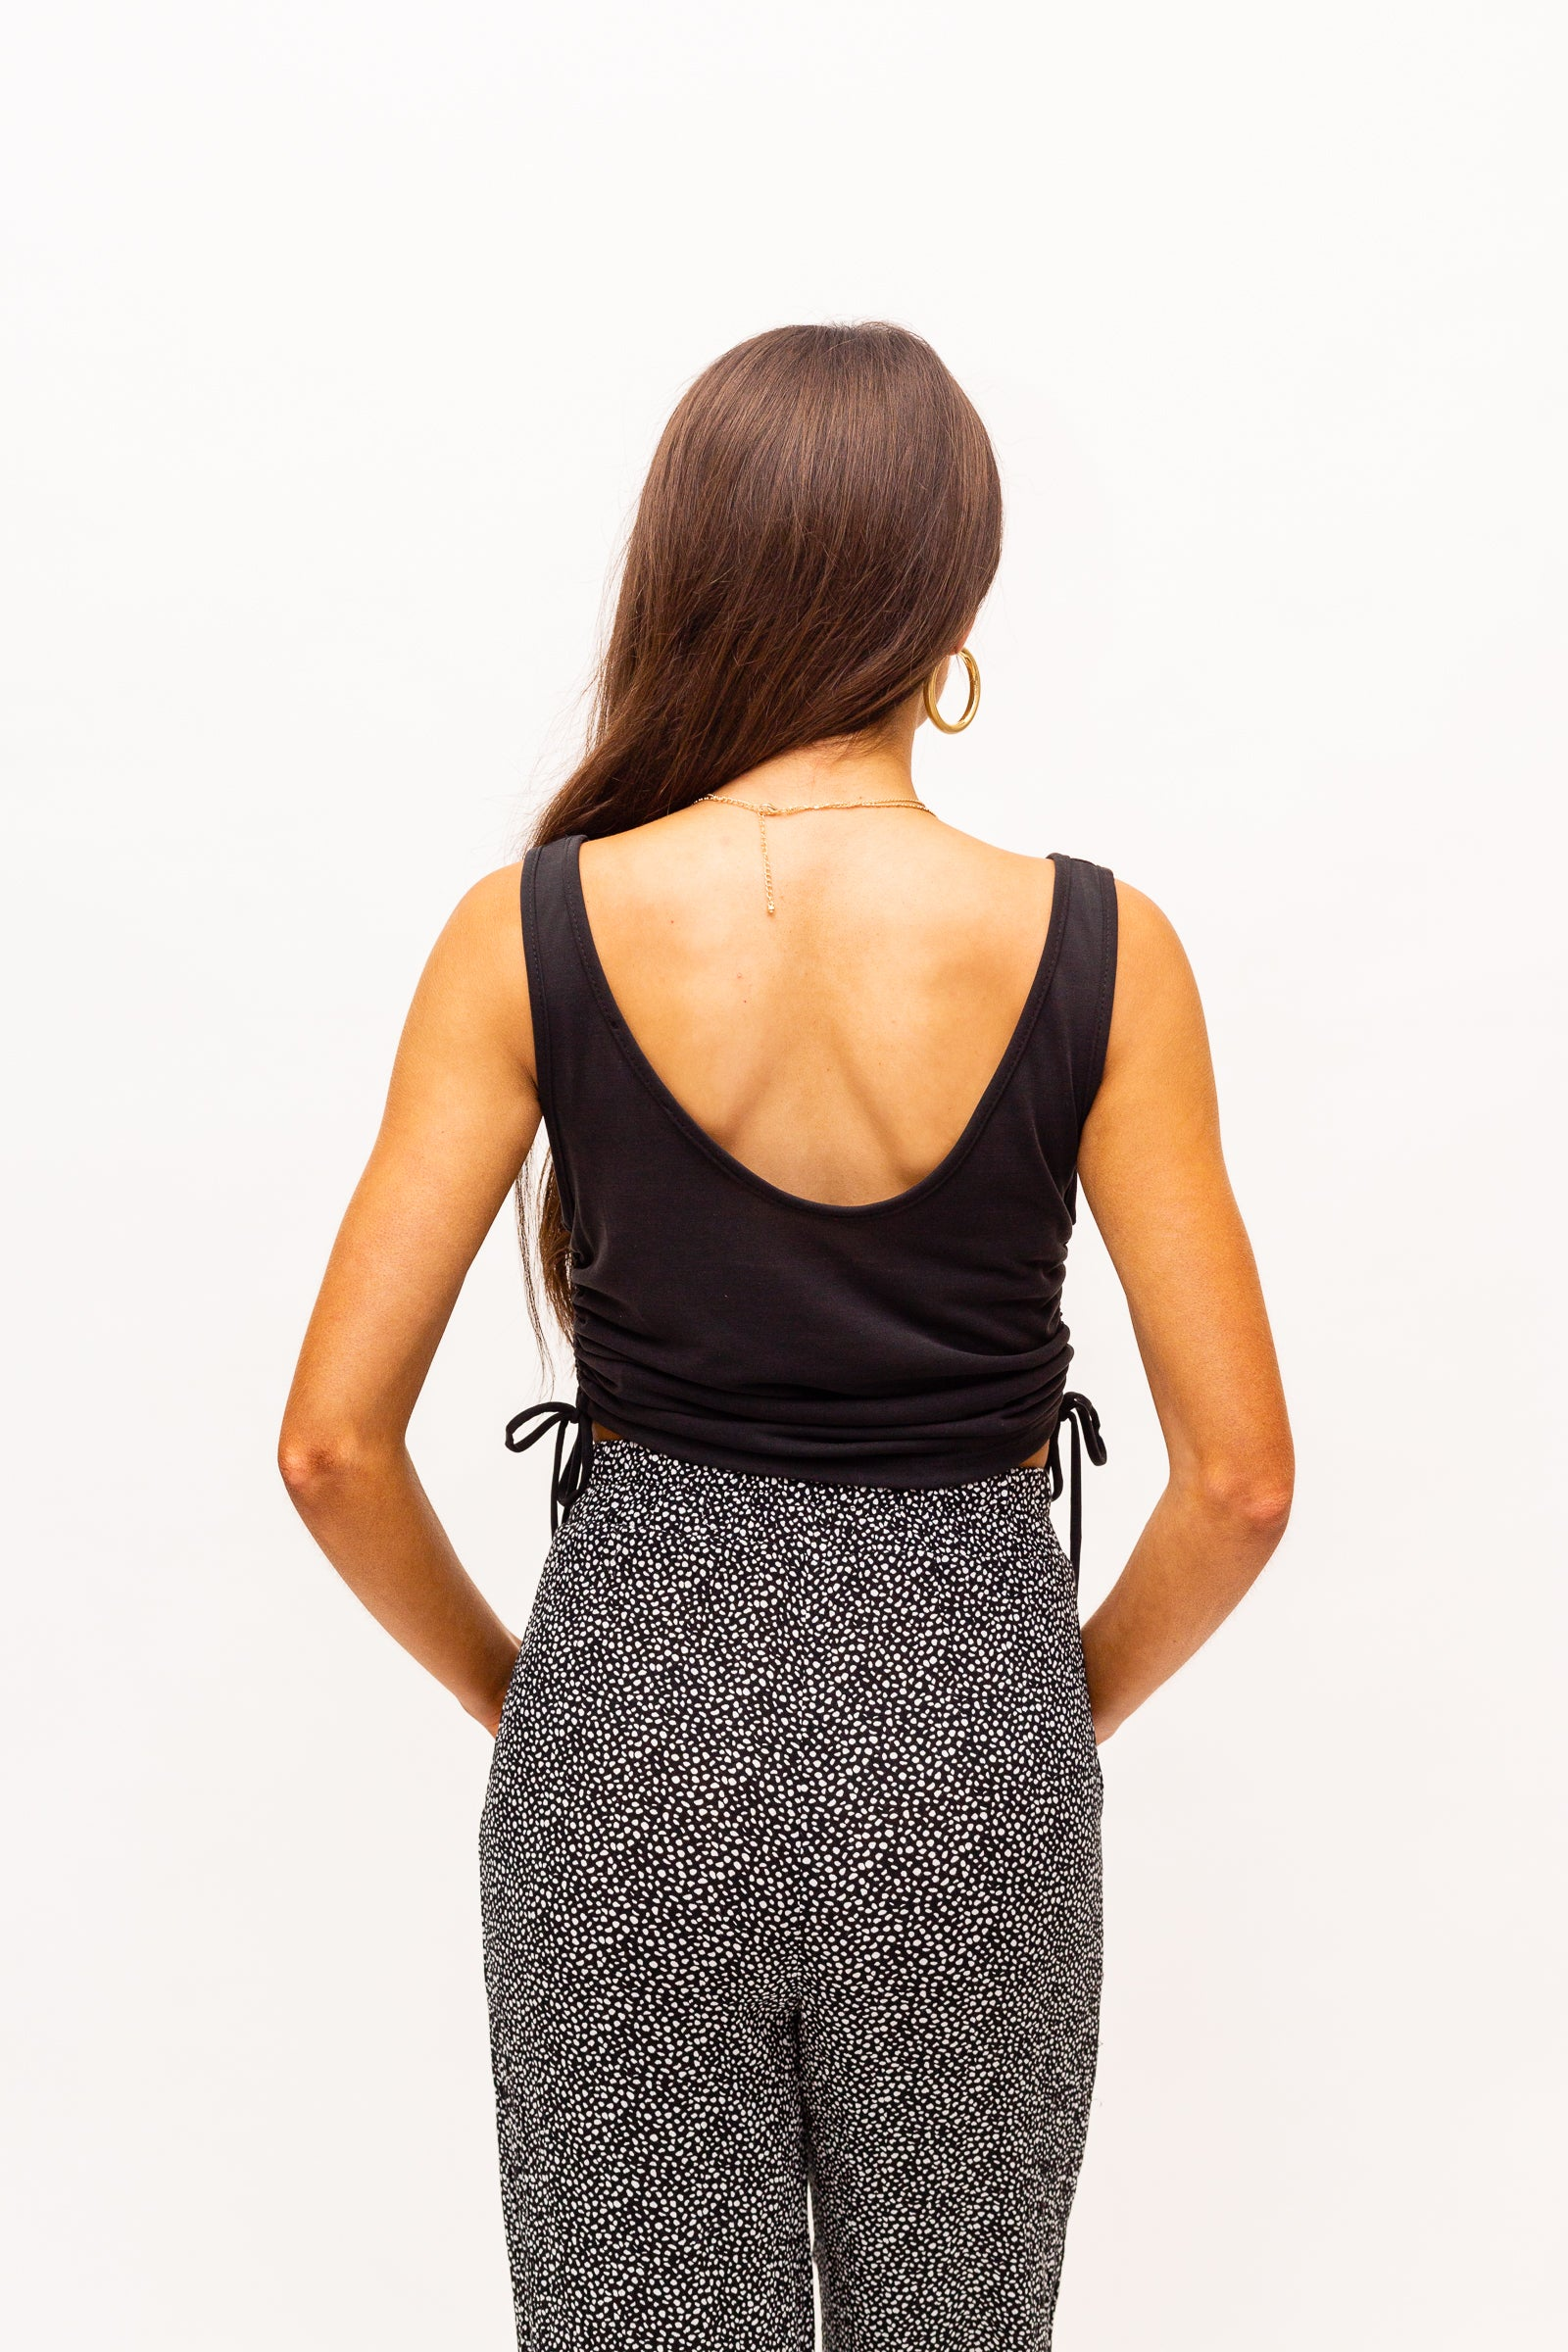 Medium straps attach to a u-neckline on a loose-fit and relaxed cropped bodice with drawstrings on the side to customize the ruching effect on the tank top.